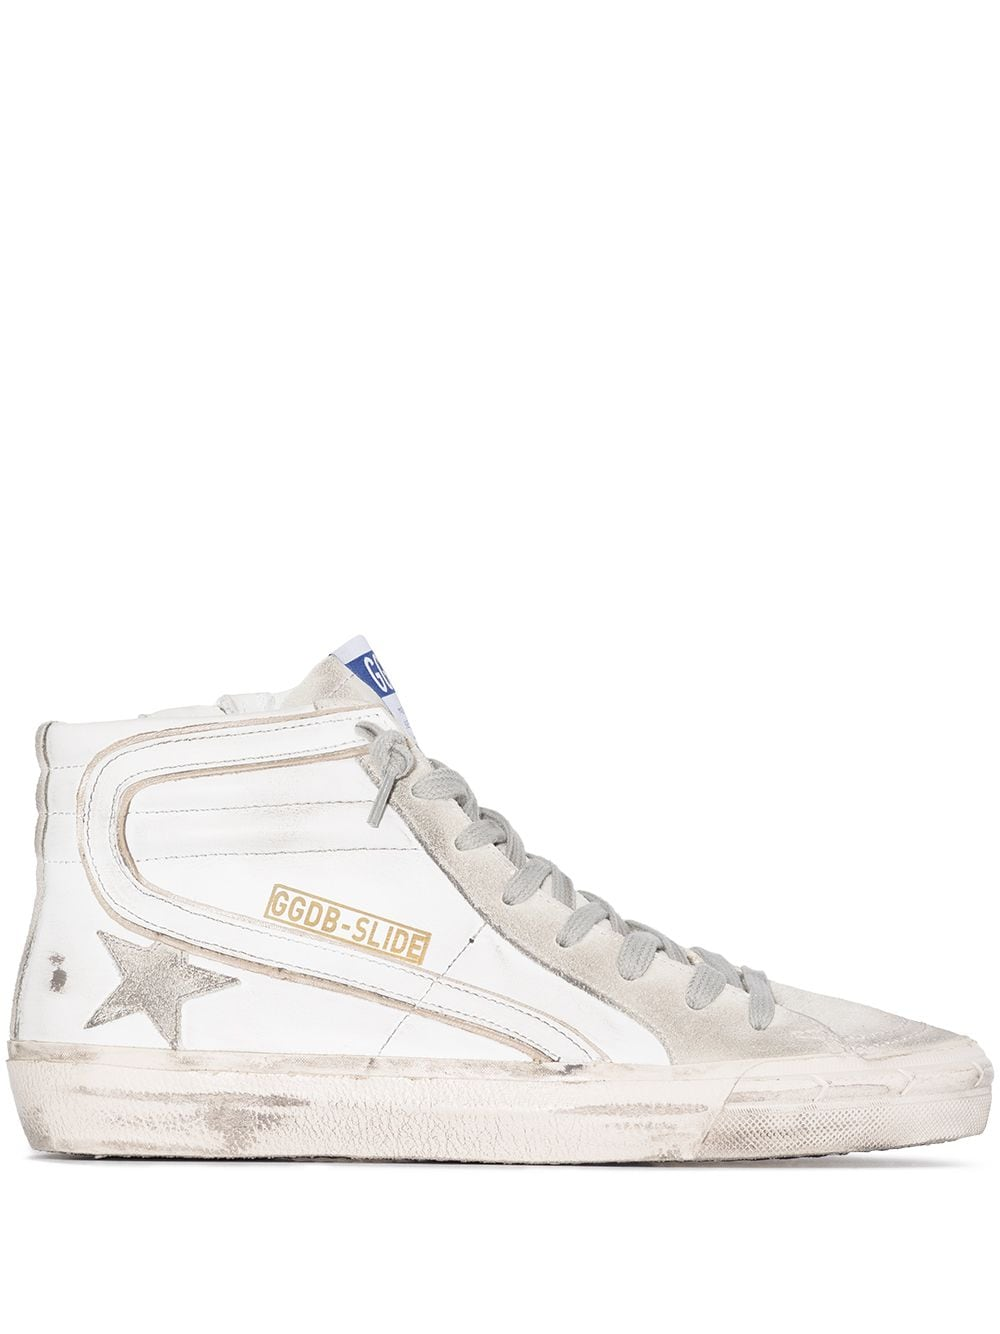 Slide High-Top Sneakers